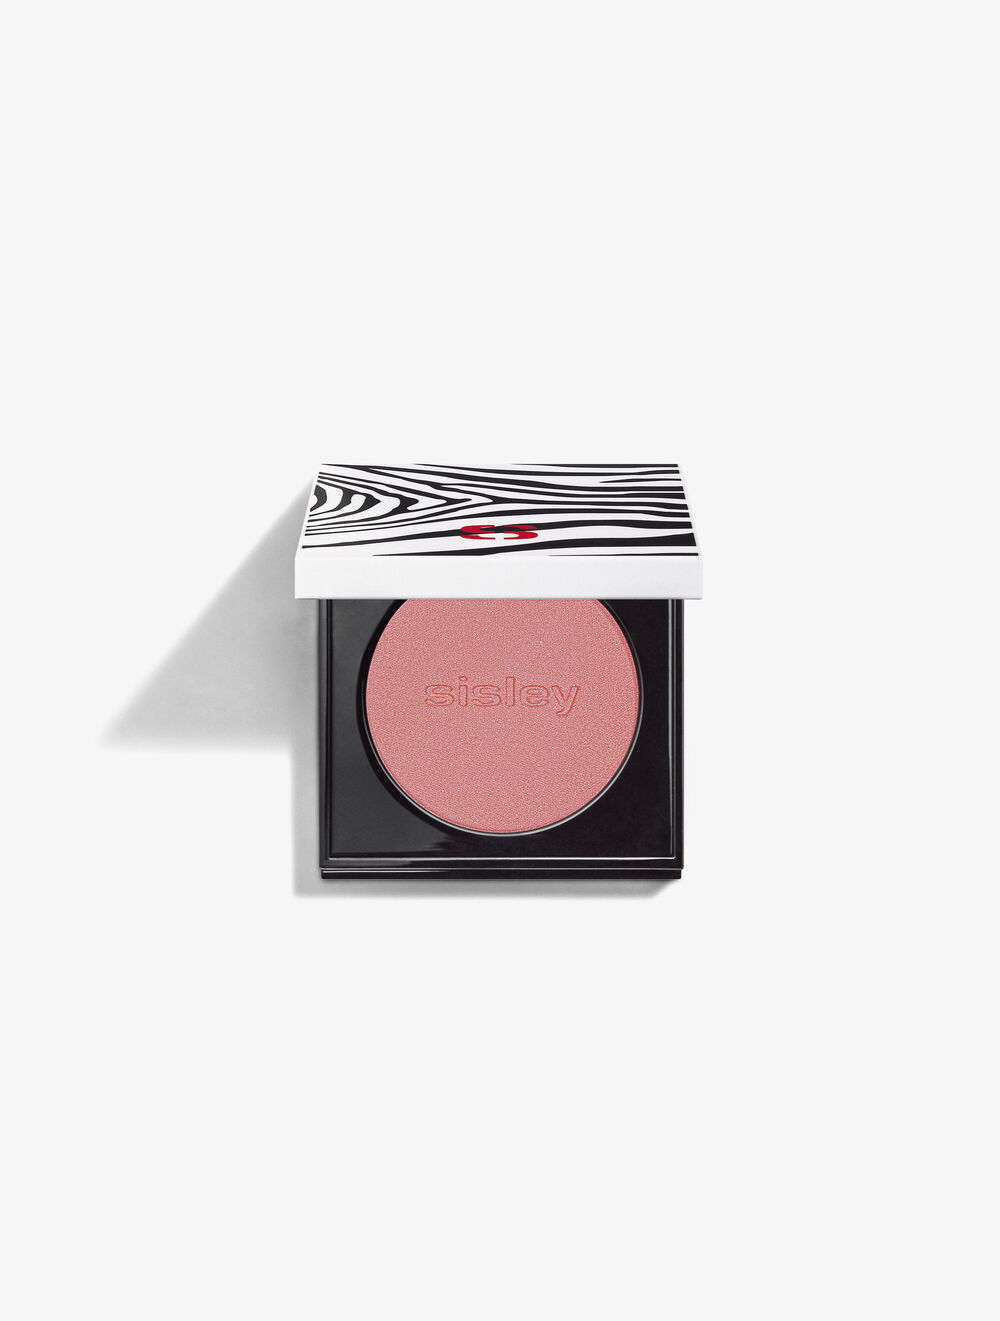 Le Phyto-Blush N°1 Pink Peony